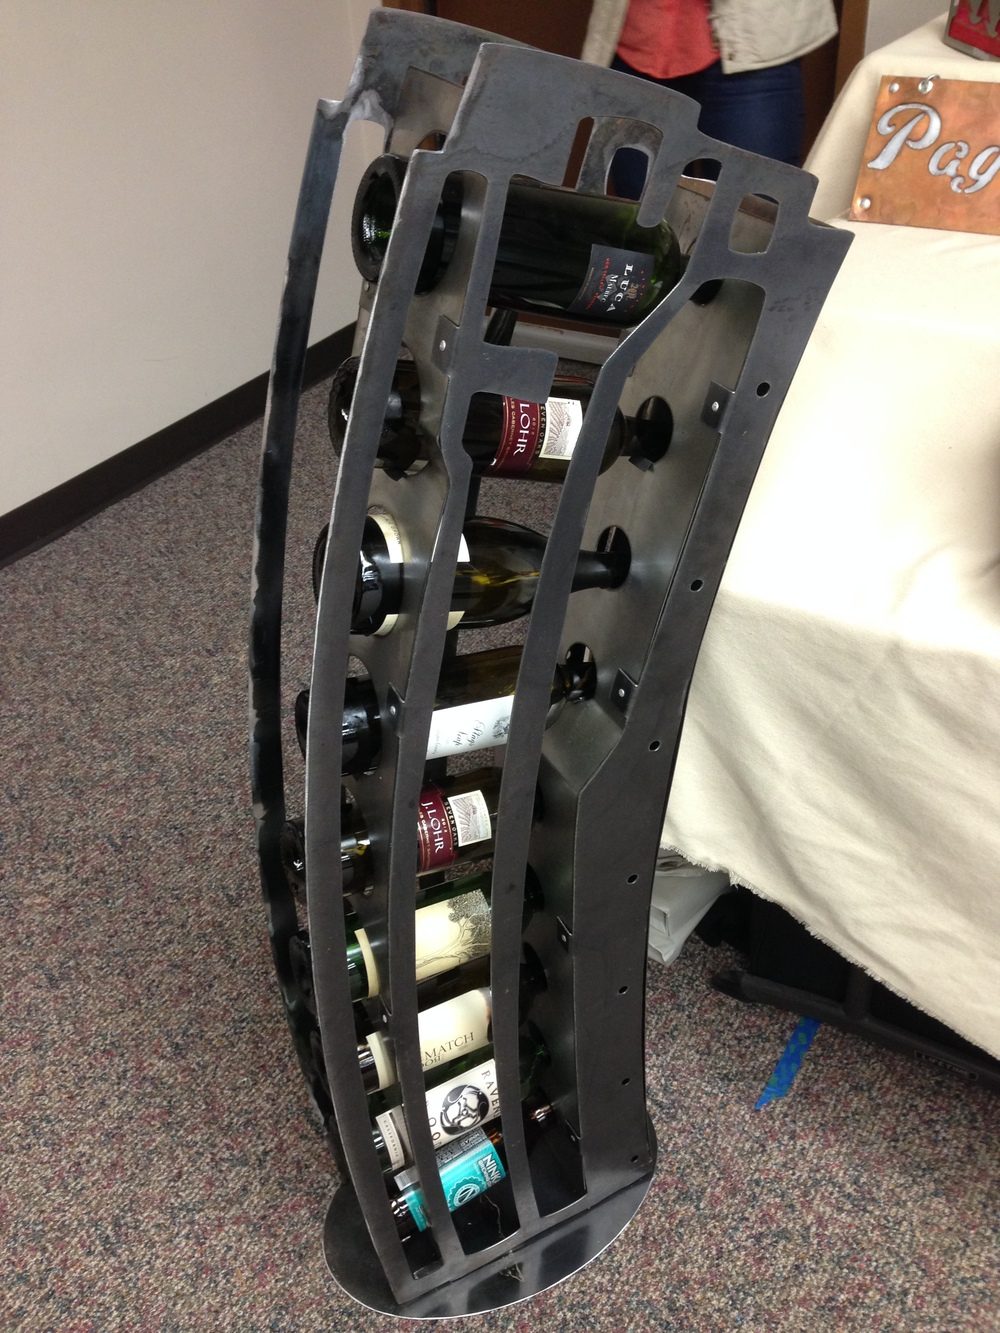 Adam Dimmitt of Eight Zero Tech constructs these steel wine racks right here in Juneau.  I want one!  (But who can keep wine in their house long enough?)